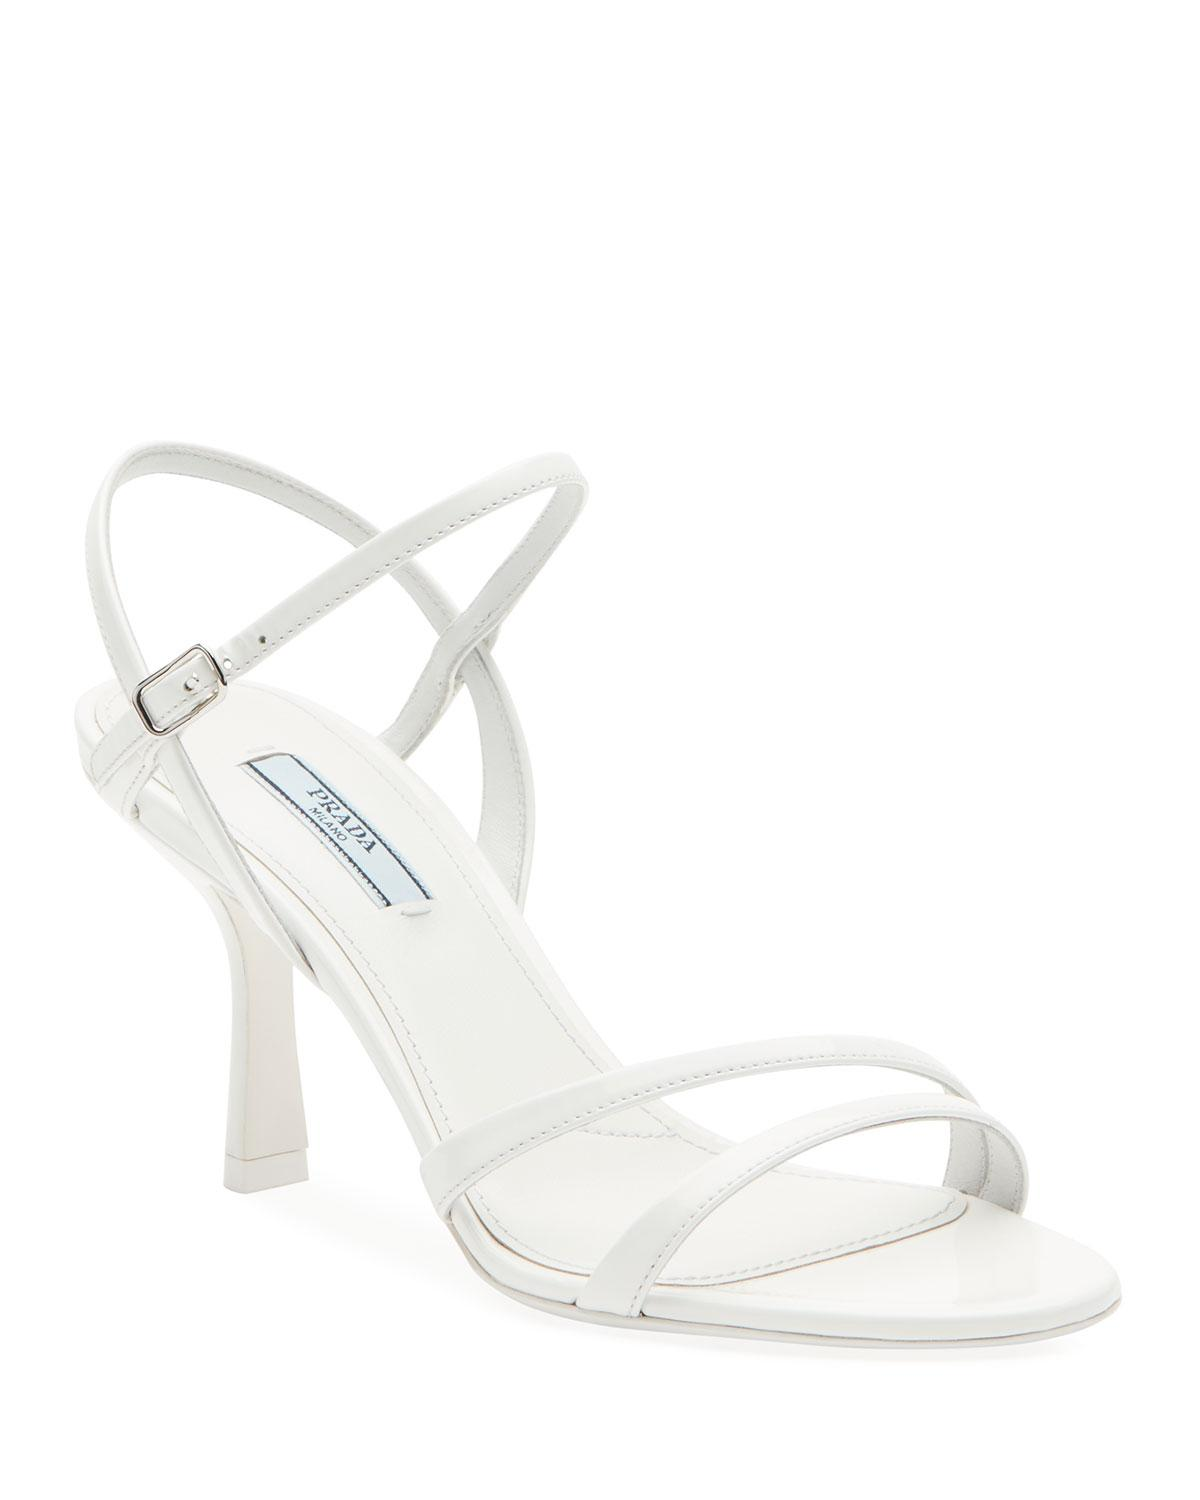 Prada Leather Patent Strappy Ankle